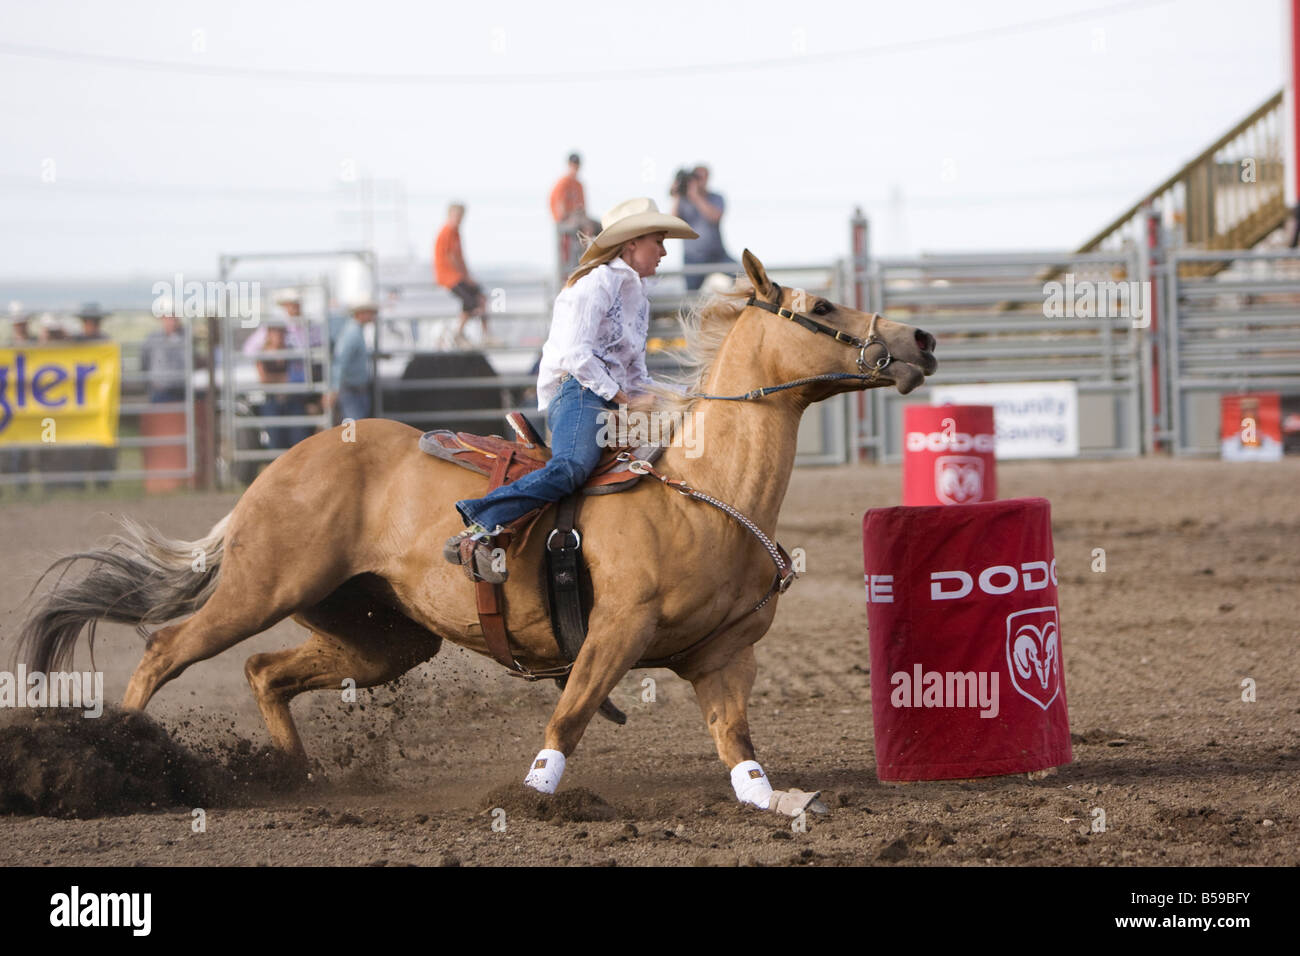 A Cowgirl Barrel Racing Around A Red Barrel On A Palomino Horse At A Stock Photo Alamy